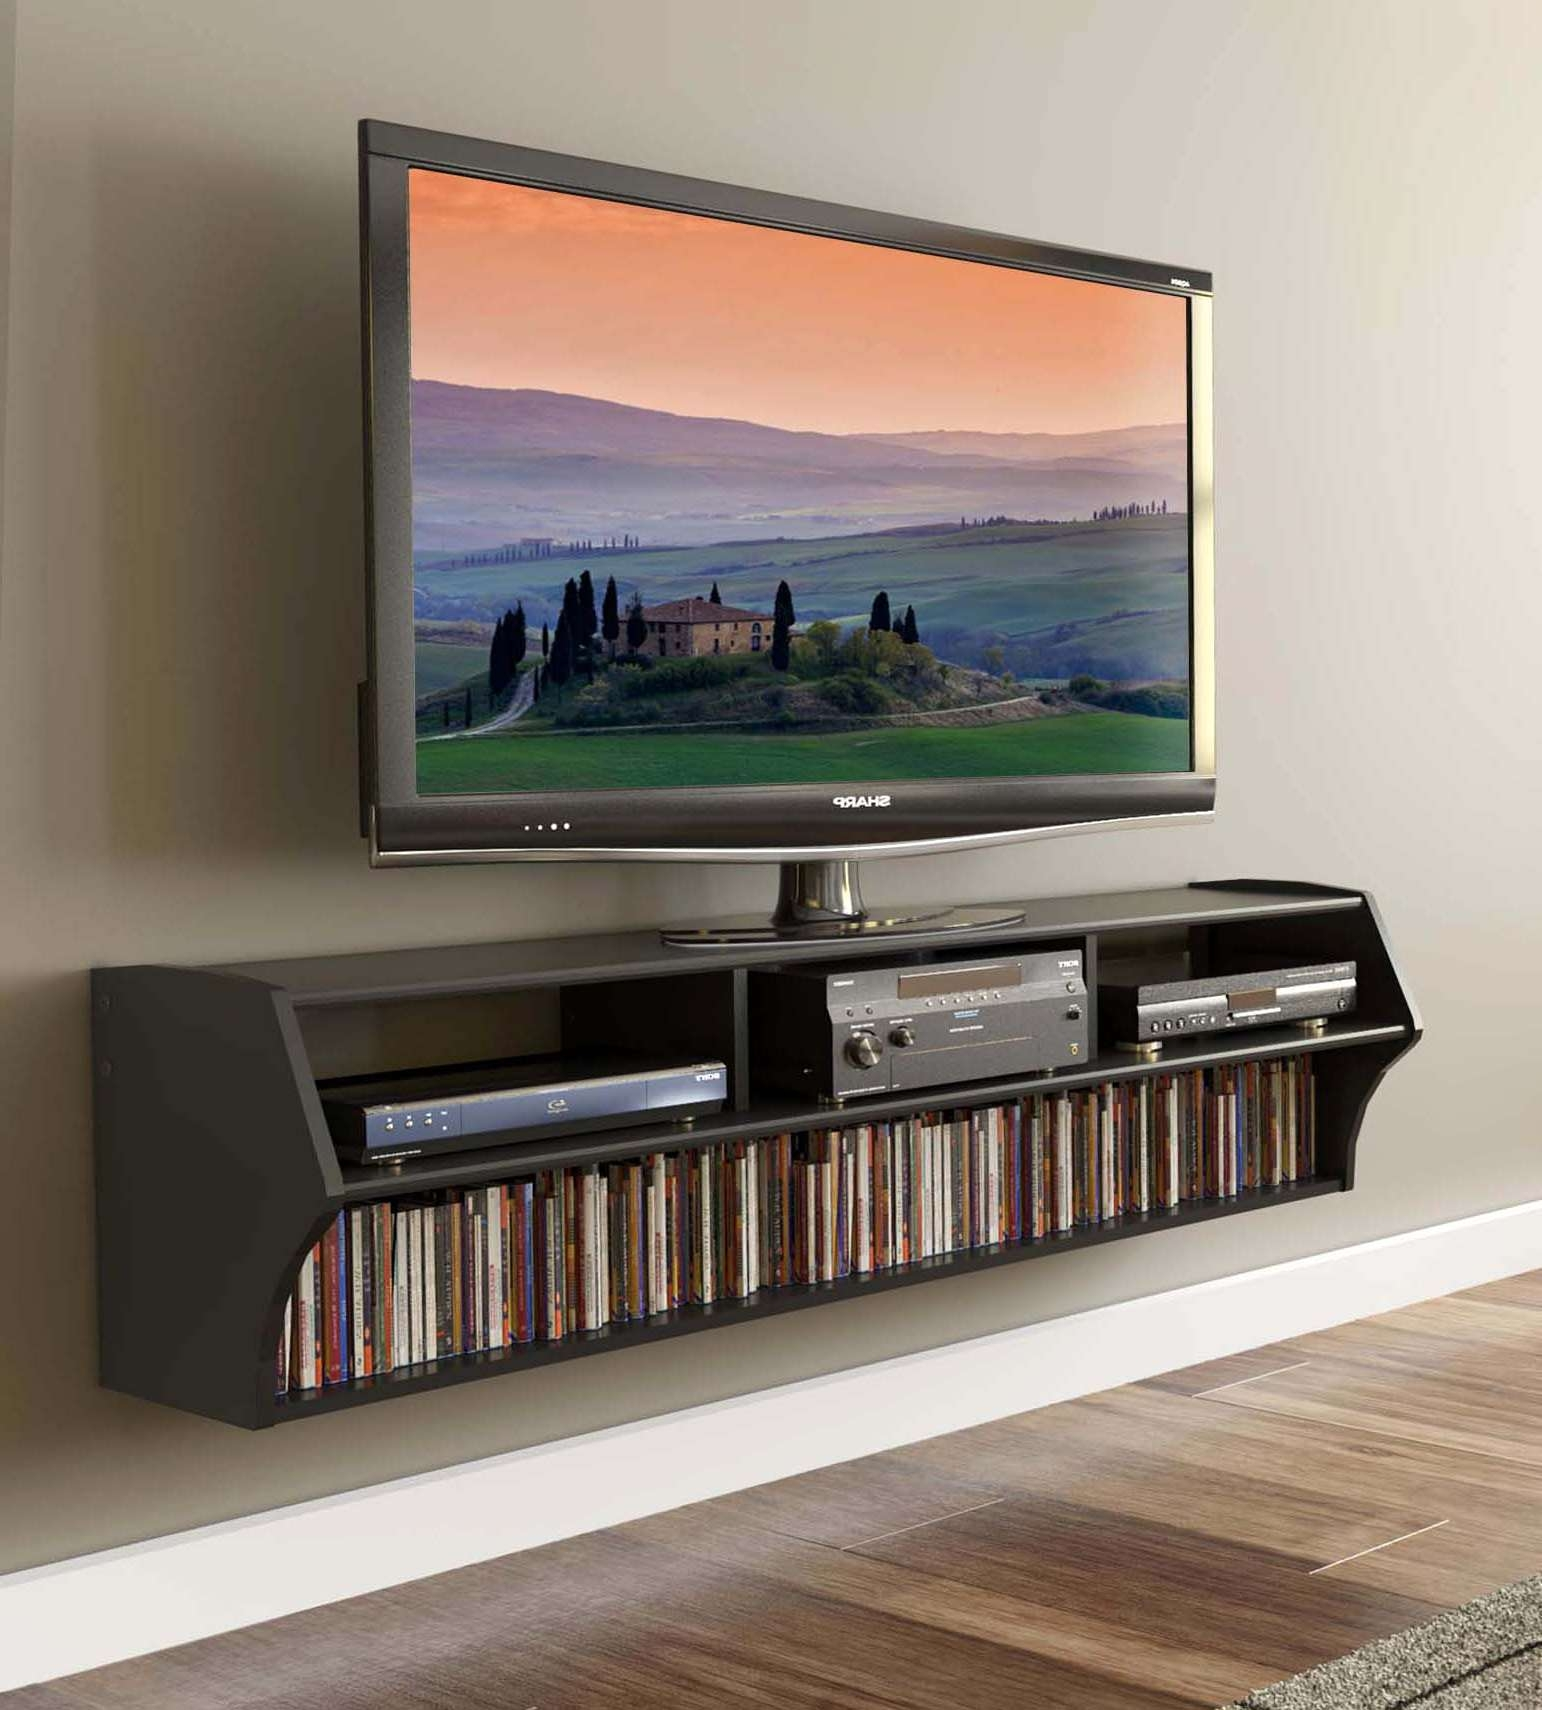 Tv : Intriguing Lockable Tv Stands Entertain Lockable Tv Stands Intended For Lockable Tv Stands (View 15 of 20)